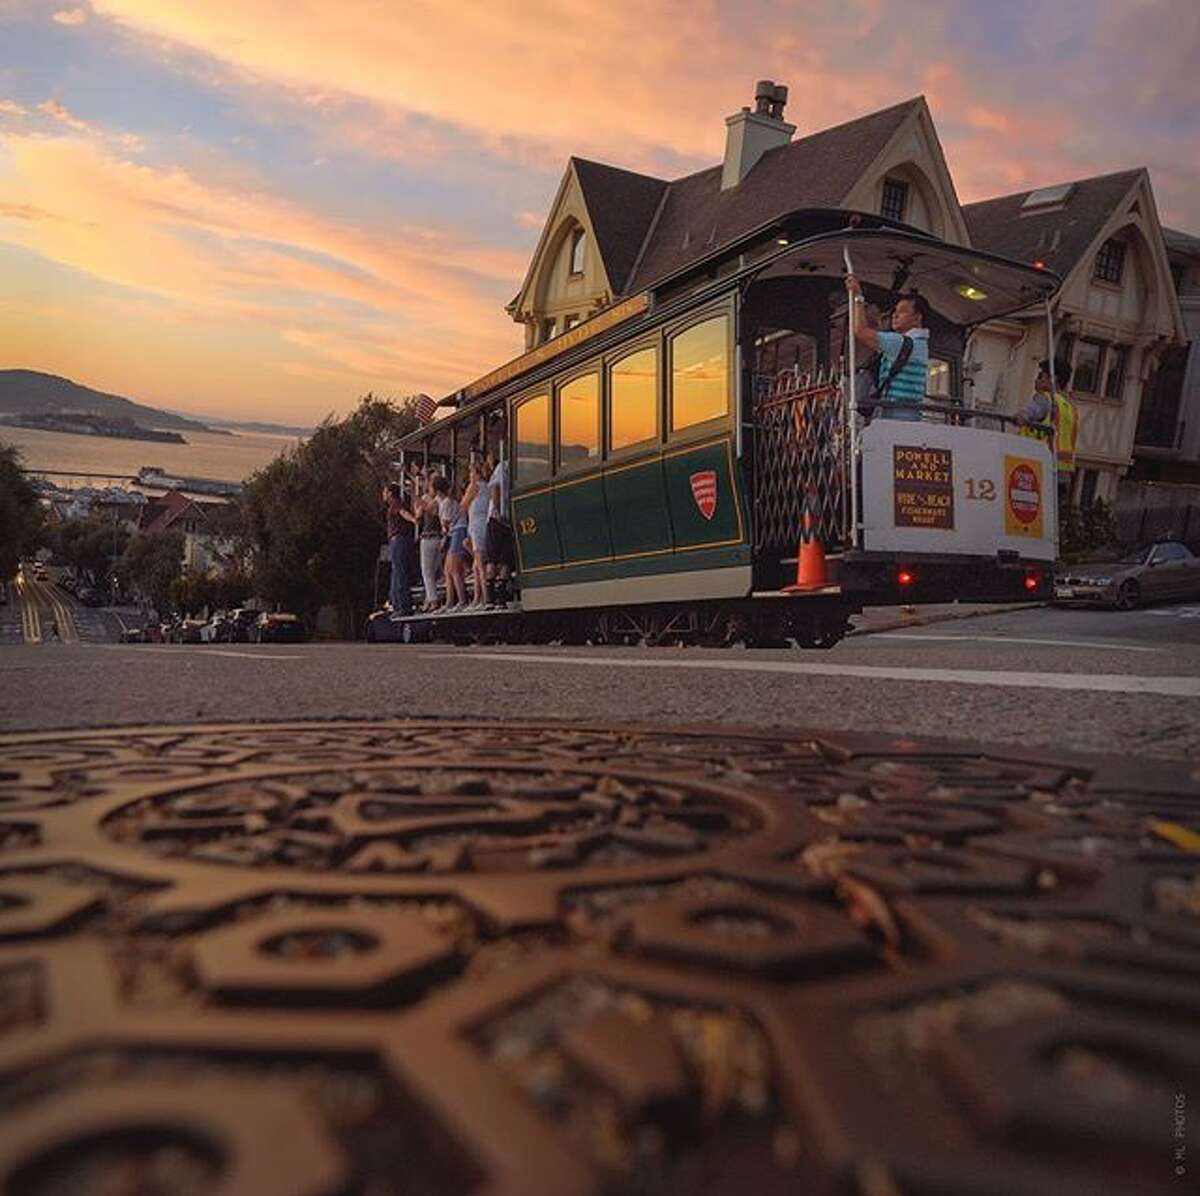 @myfrisco took this unique angle of San Francisco's cable car.